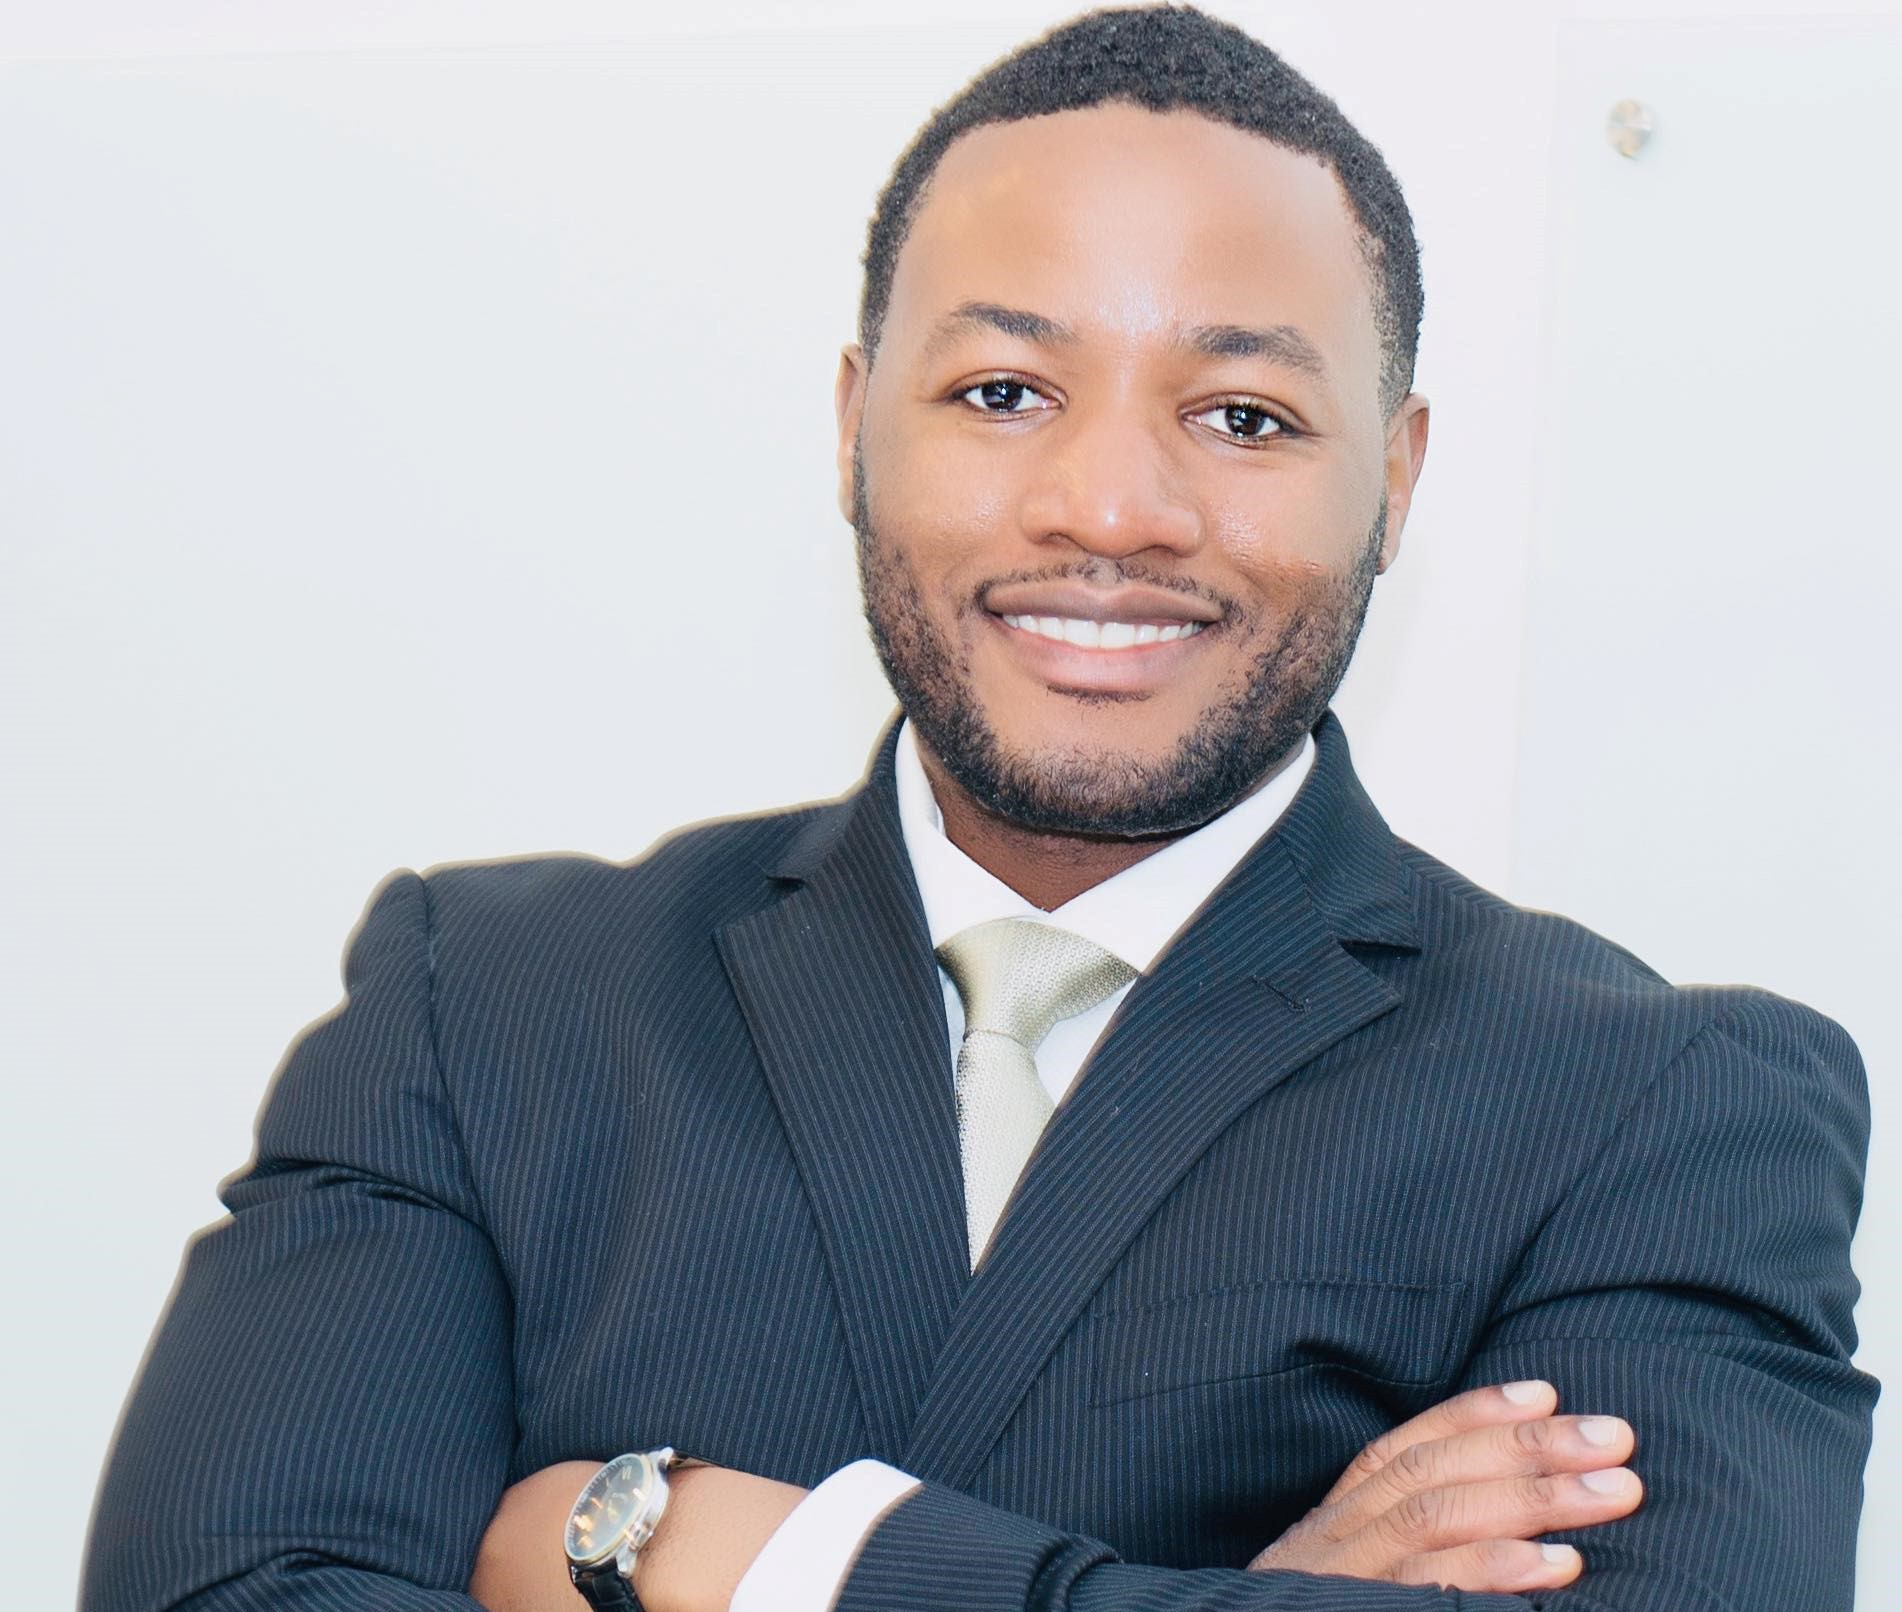 Black Traders Club: A New Generation of Black Stock Market Investors in Montreal